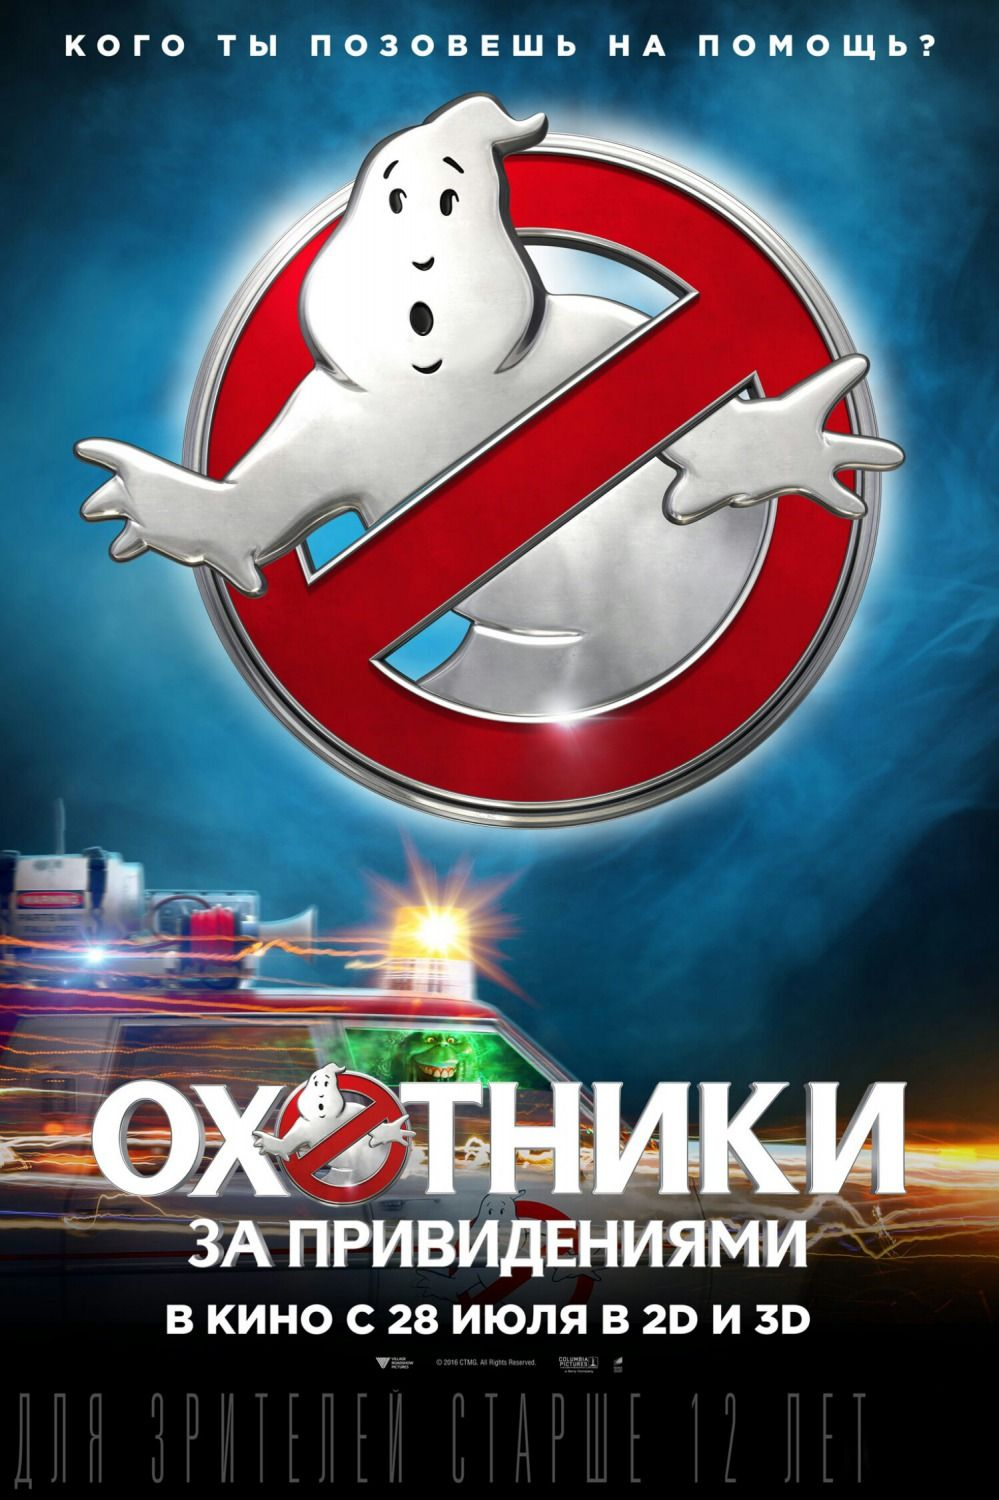 GHOSTBUSTERS (2016) - New Clips, Images and Posters